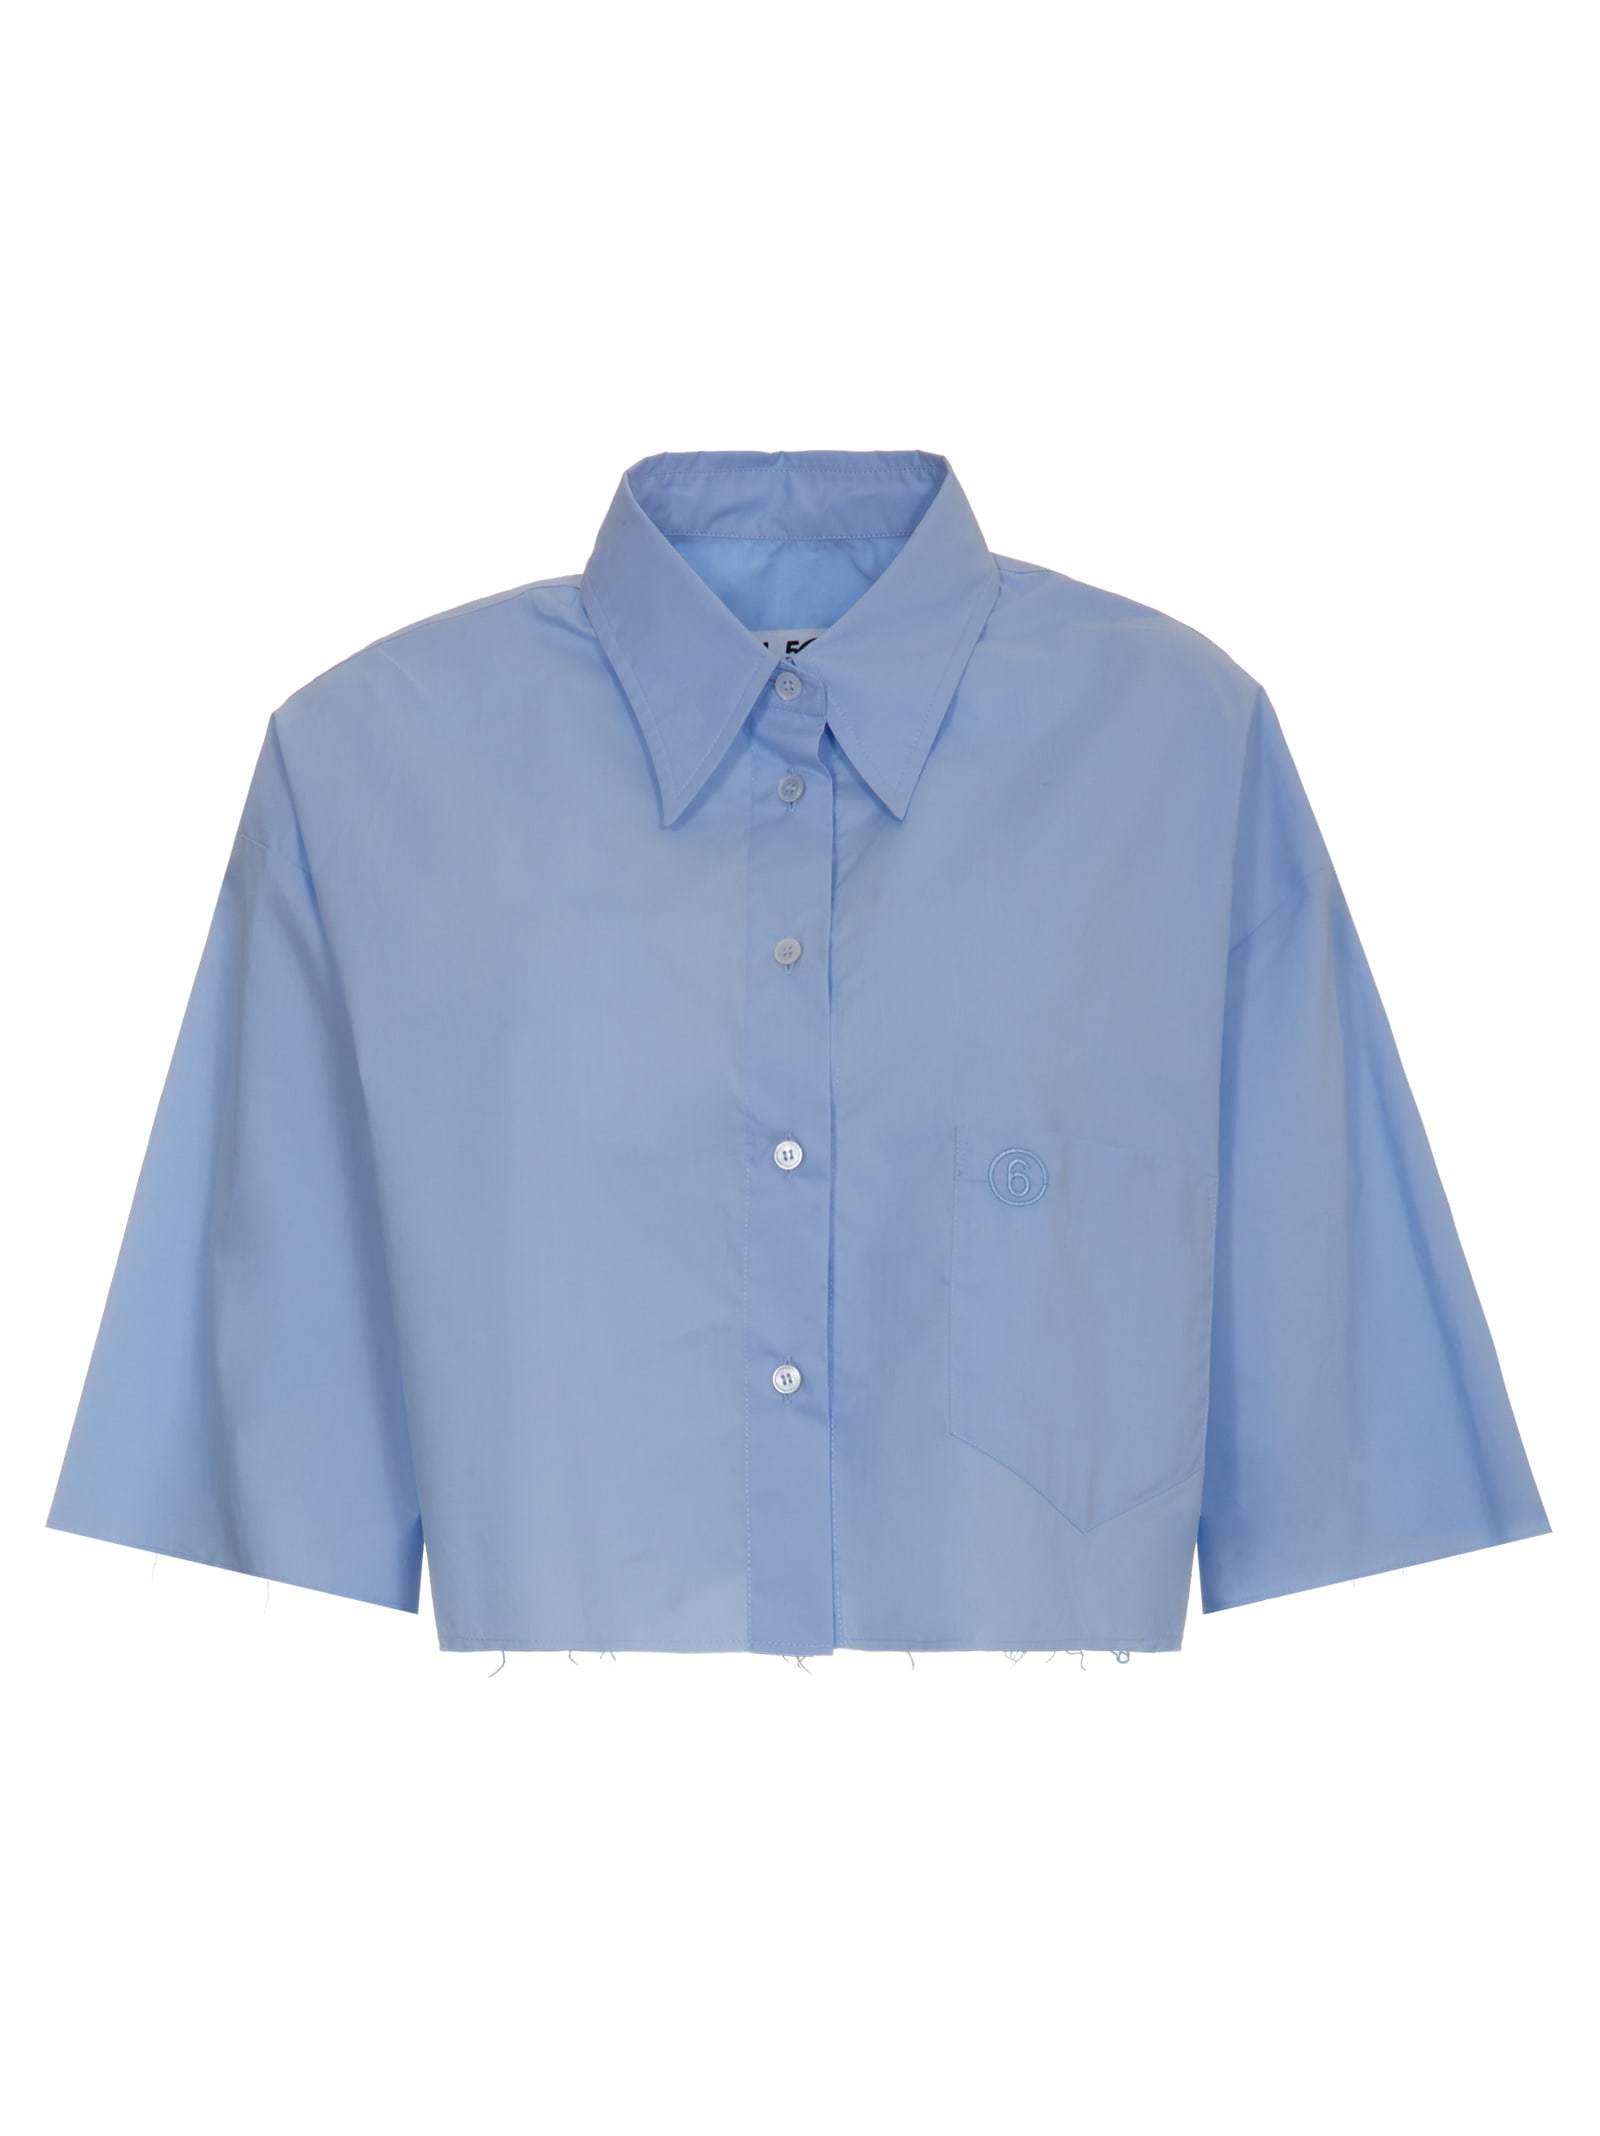 Mm6 Maison Margiela CROPPED SHIRT